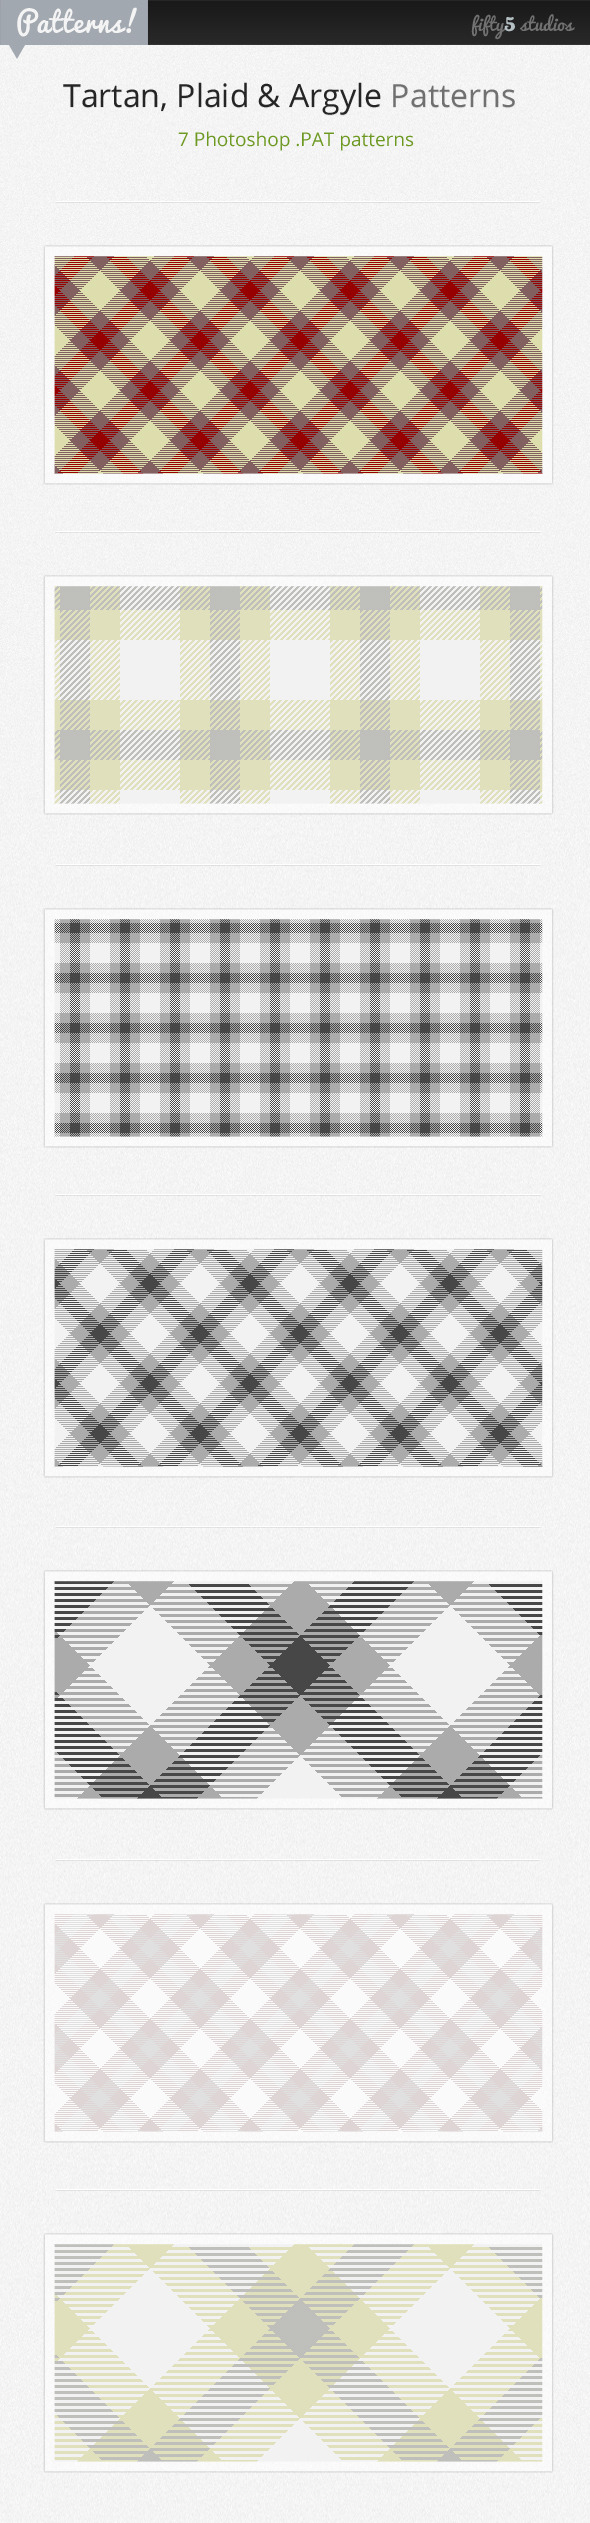 7 Tartan, Plaid & Arglye Patterns - Textures / Fills / Patterns Photoshop